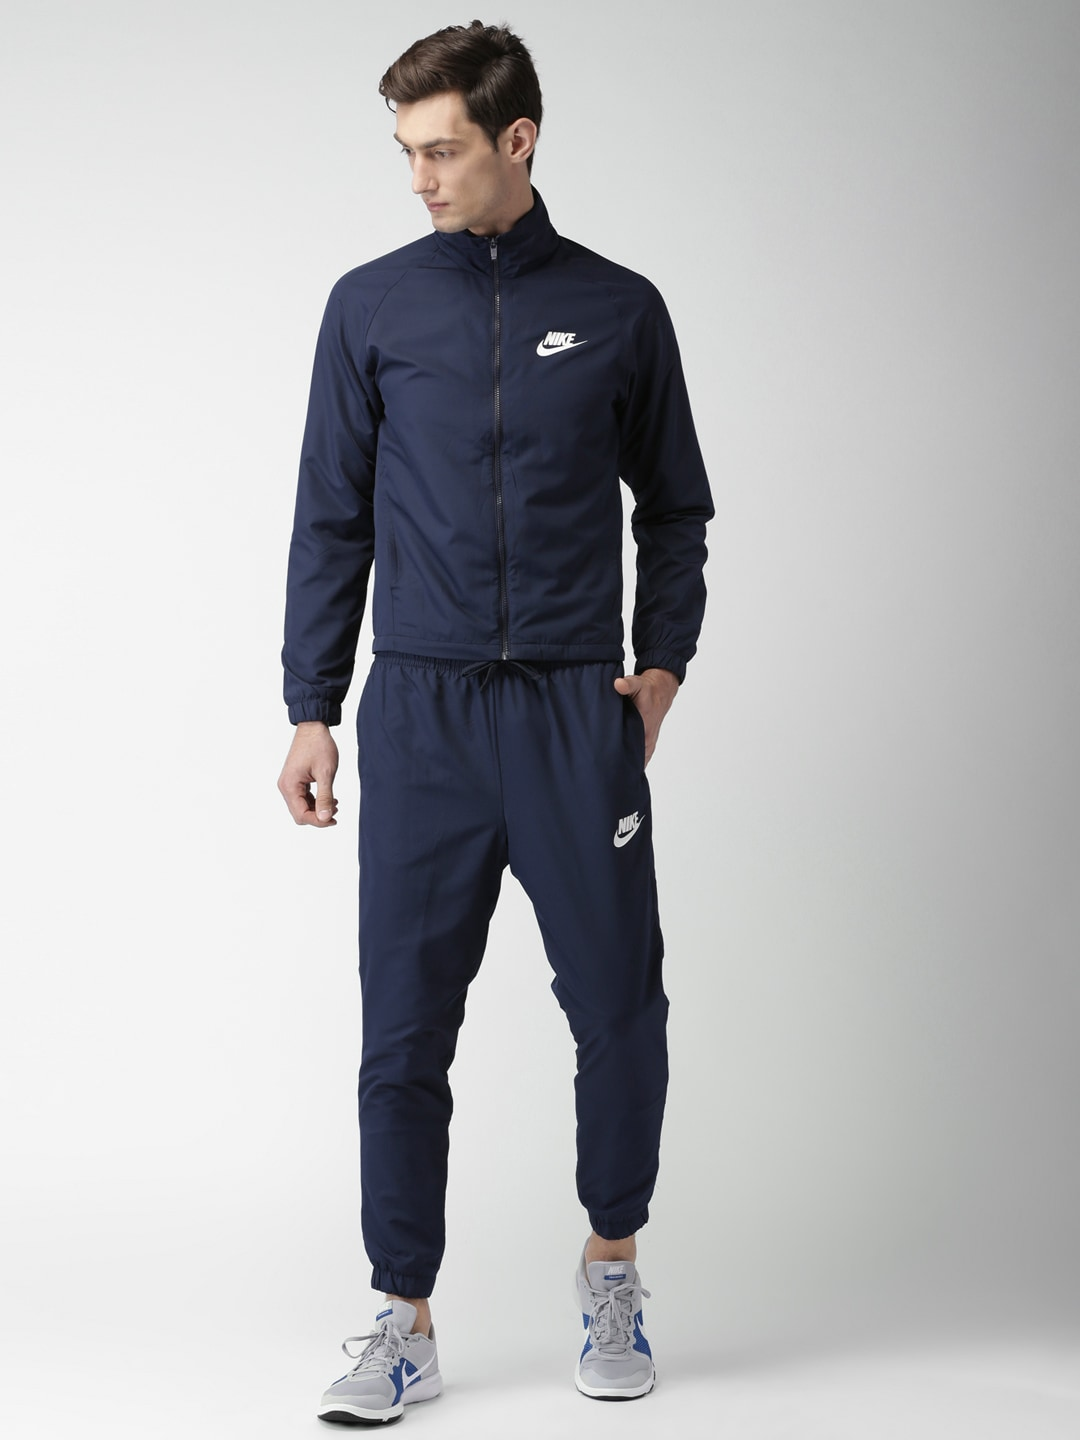 7159e8aceda2 Buy Puma Navy Style Good Sweat Suit Cl Track Suit - Tracksuits for ...